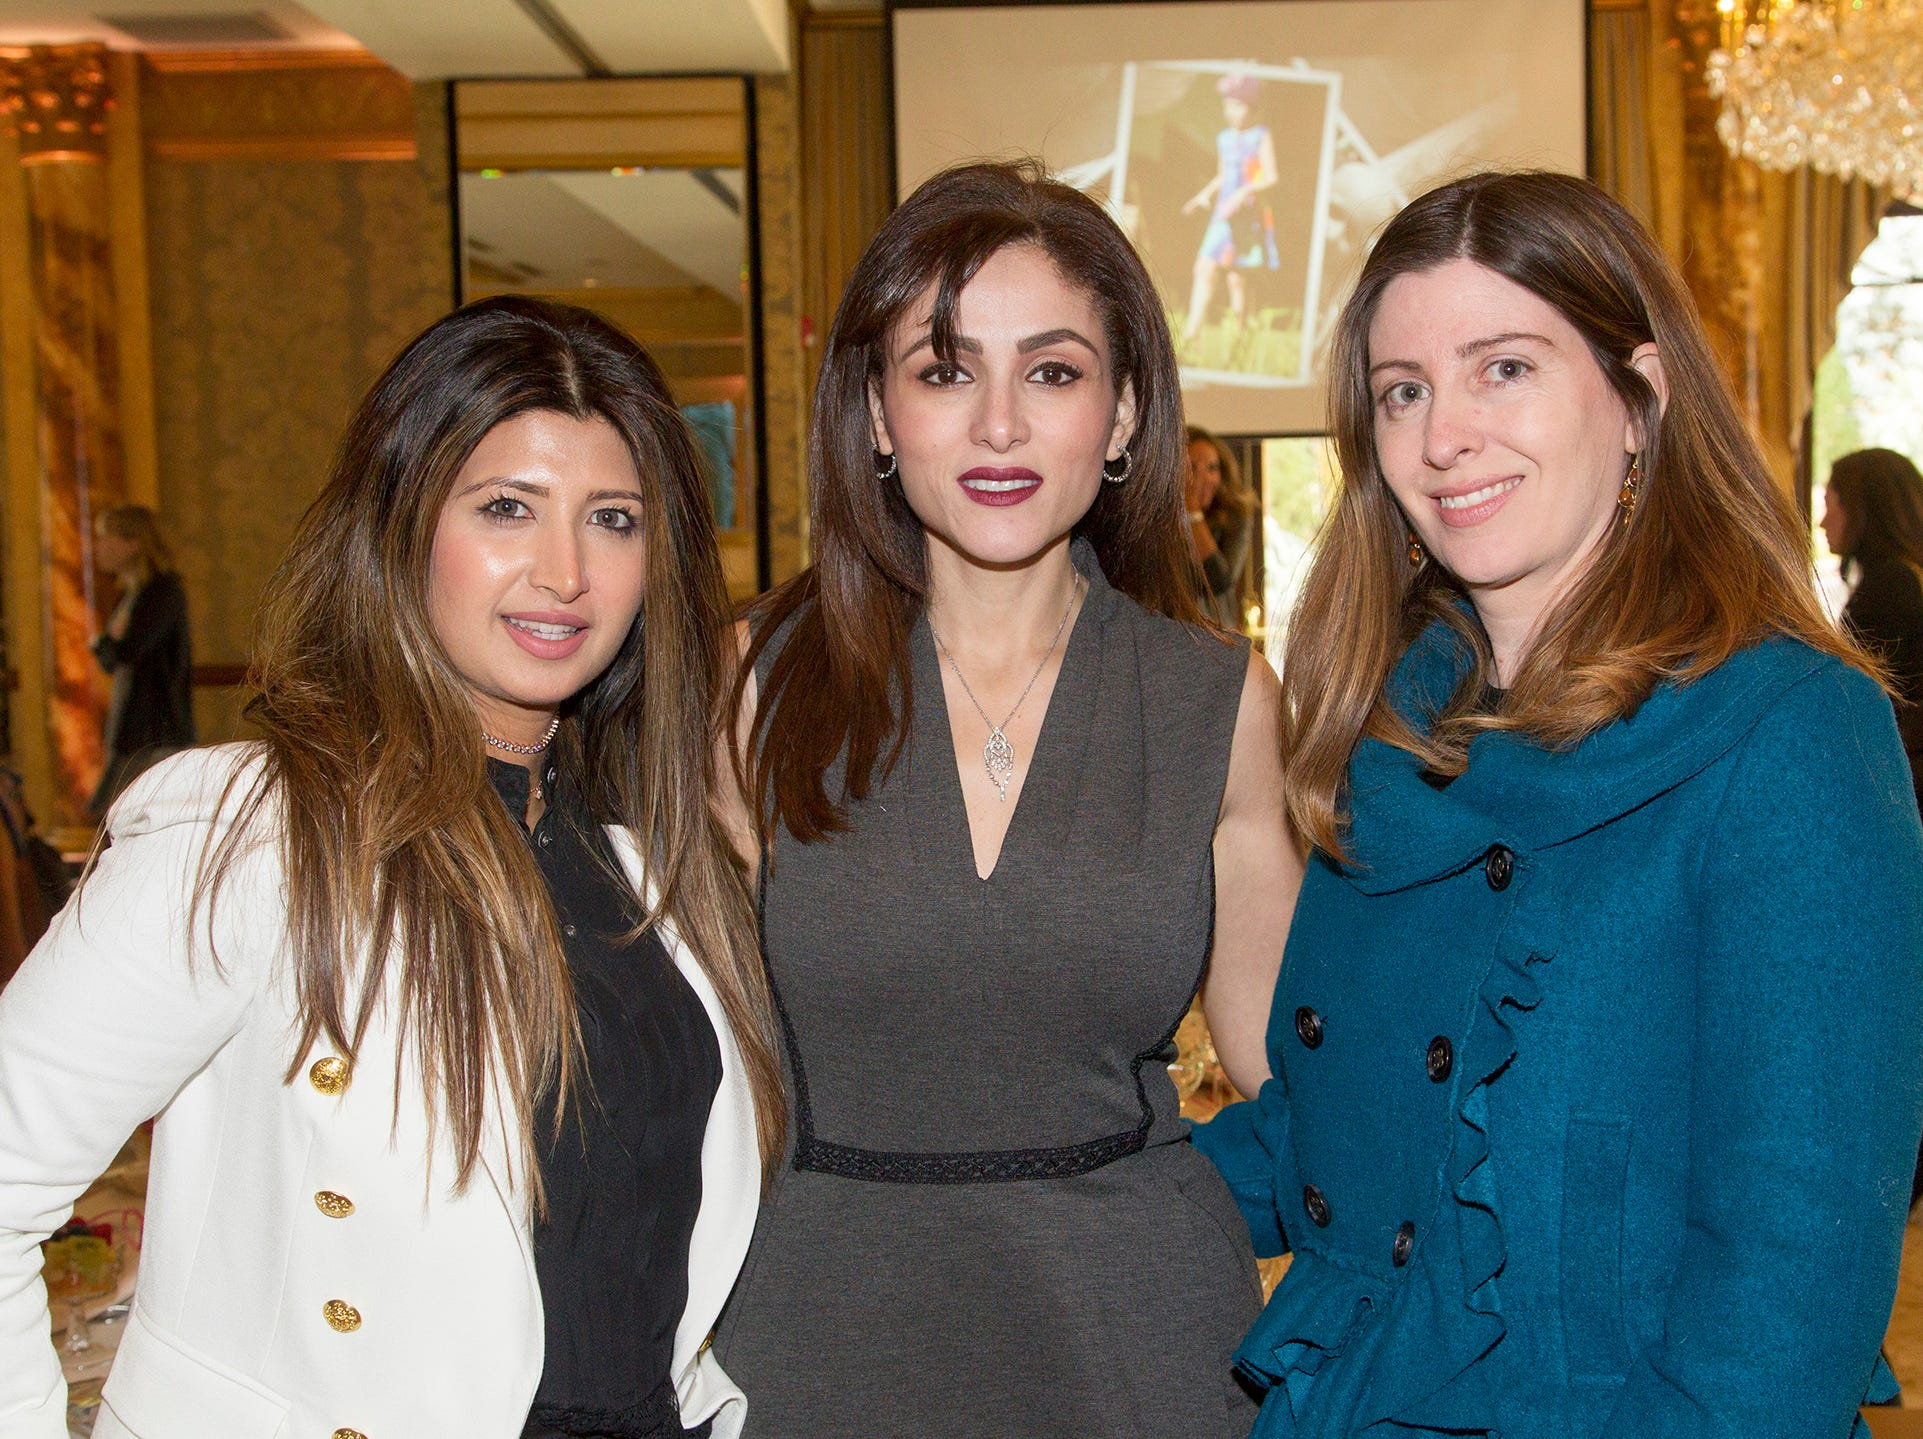 Maheen Admani, Yasmin Elshami, Pamela Kadakia. Josephine's Garden, part of Hackensack Meridian Health, held its luncheon gala at Season's in Washington Township. The mission of this organization is to provide a place of respite, joy and hope to children battling cancer. 11/14/2018